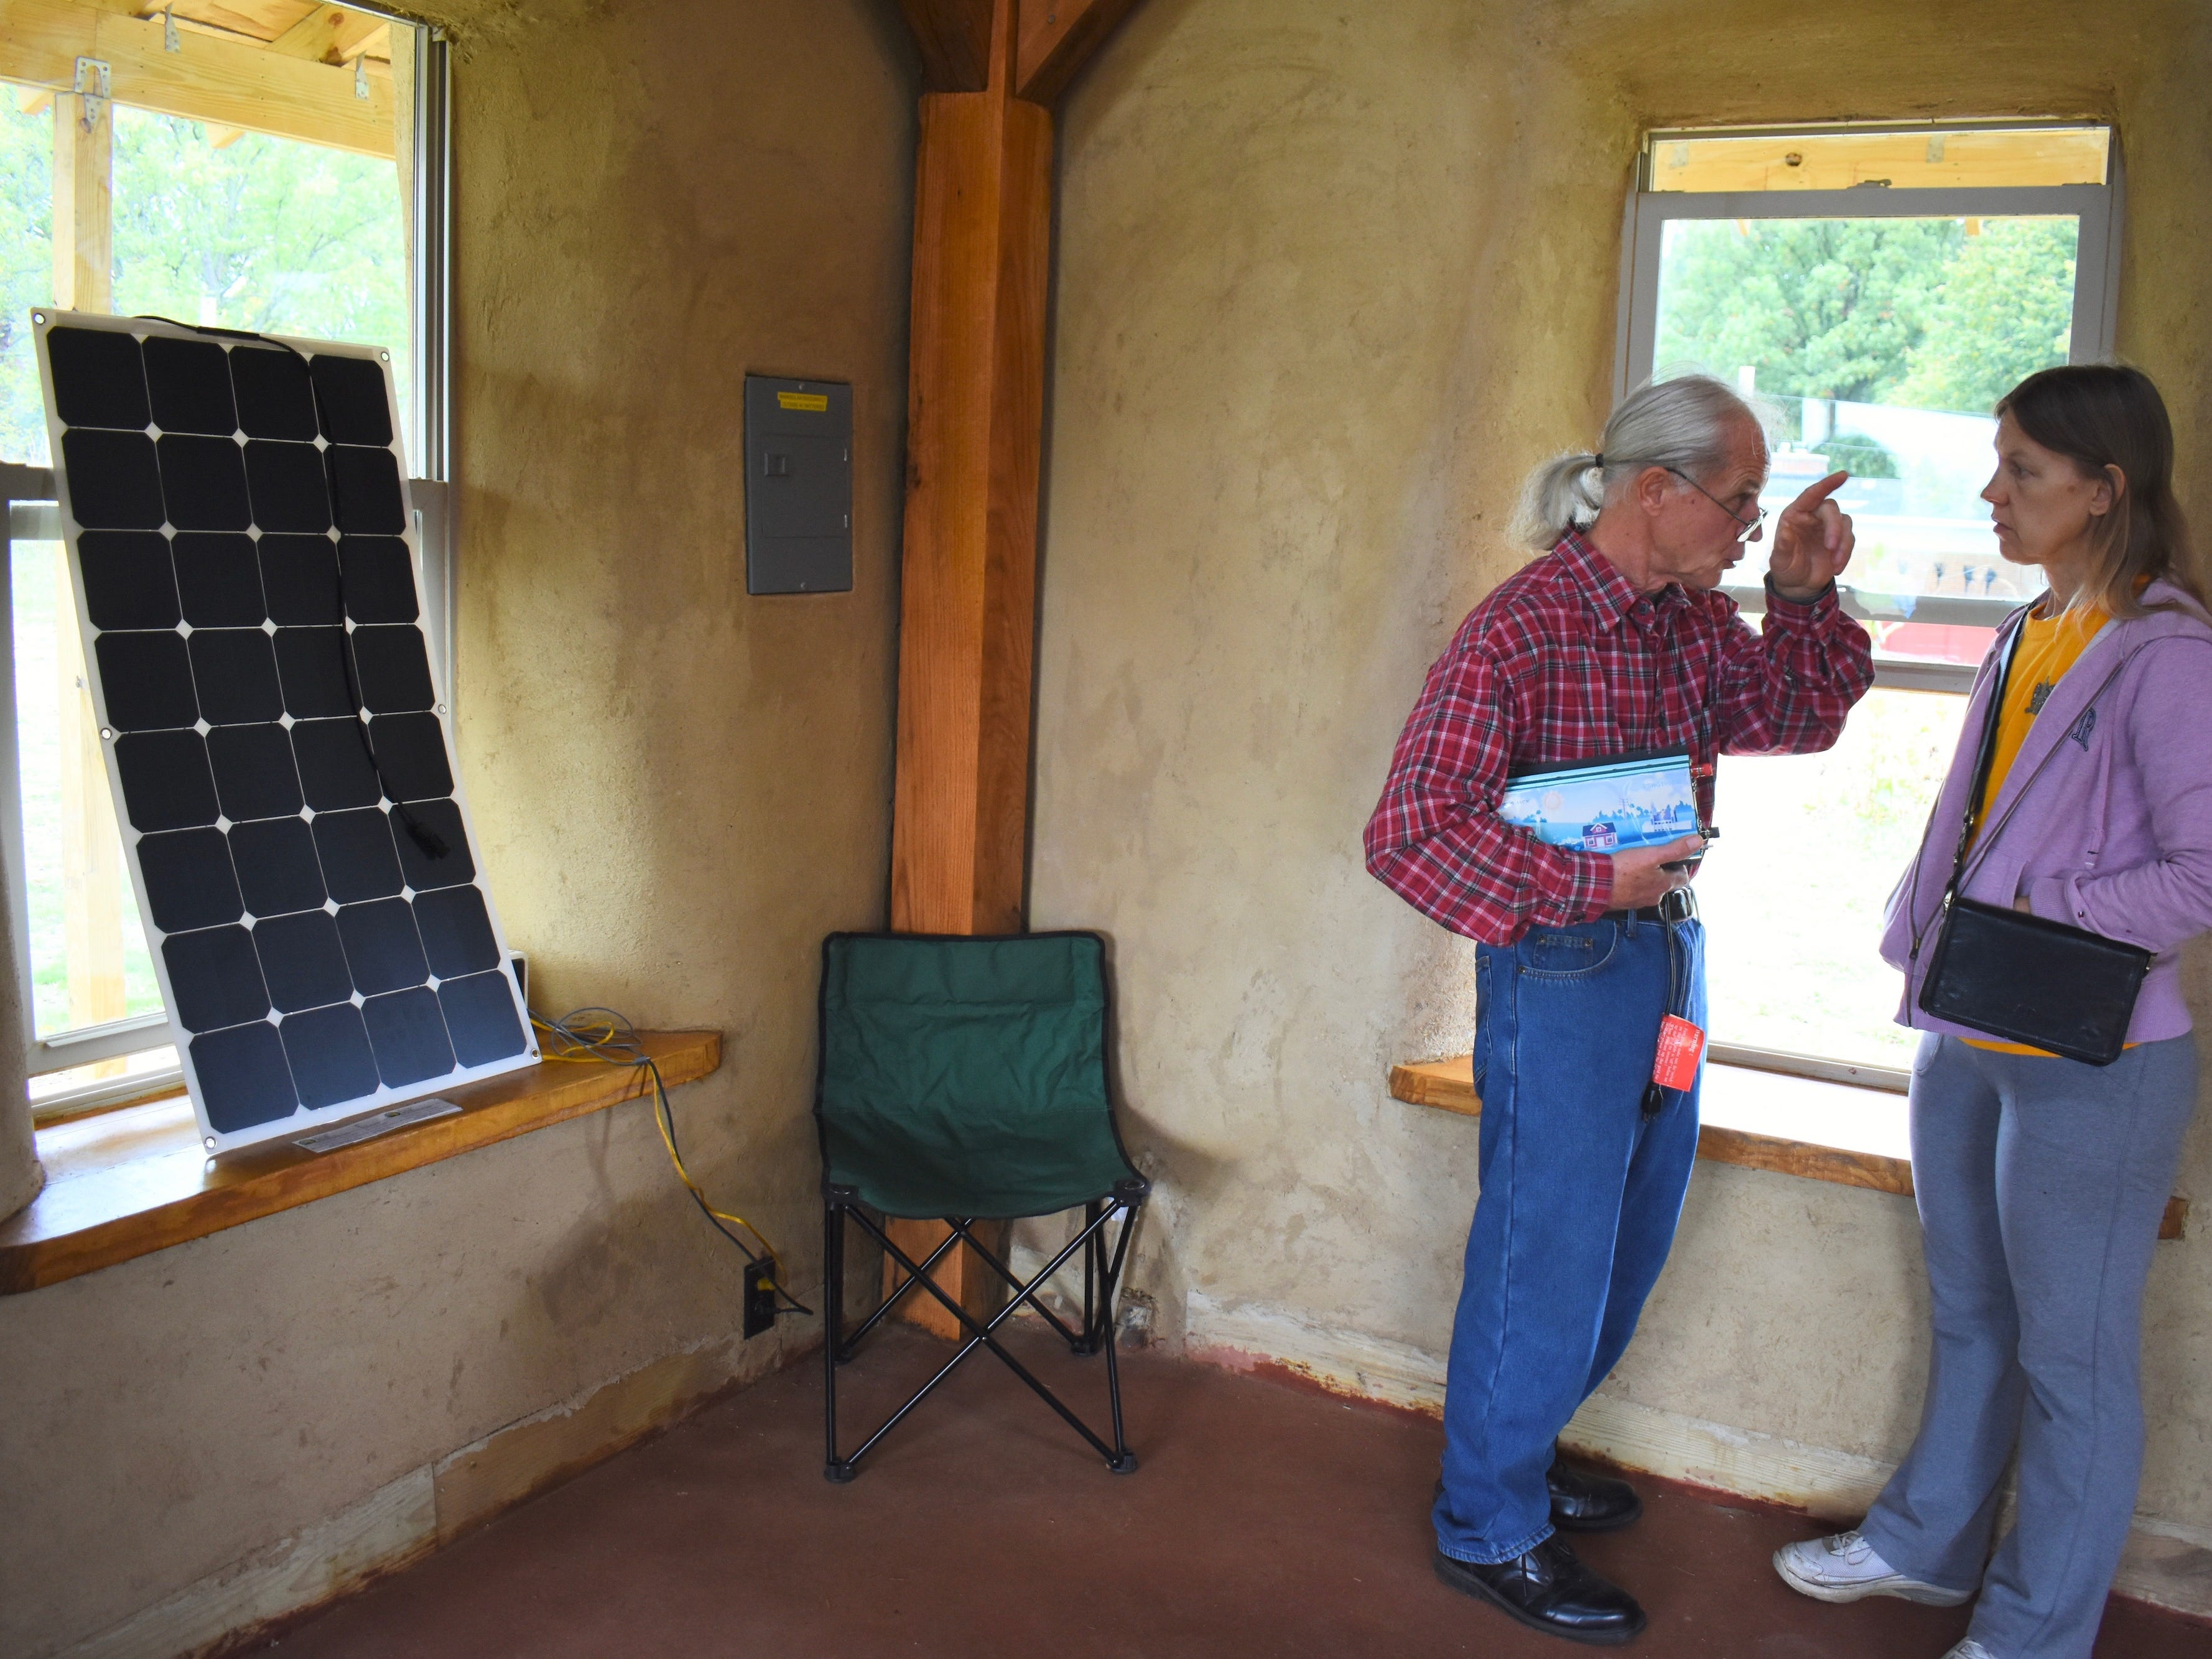 Standing next to a solar powered system that provides electricity to the Straw Bale Building, Michigan Energy Works Owner Chad Lampkin, left, talks about the set-up with Selena Lucas, who is planning on building an off-the-grid straw house of her own.